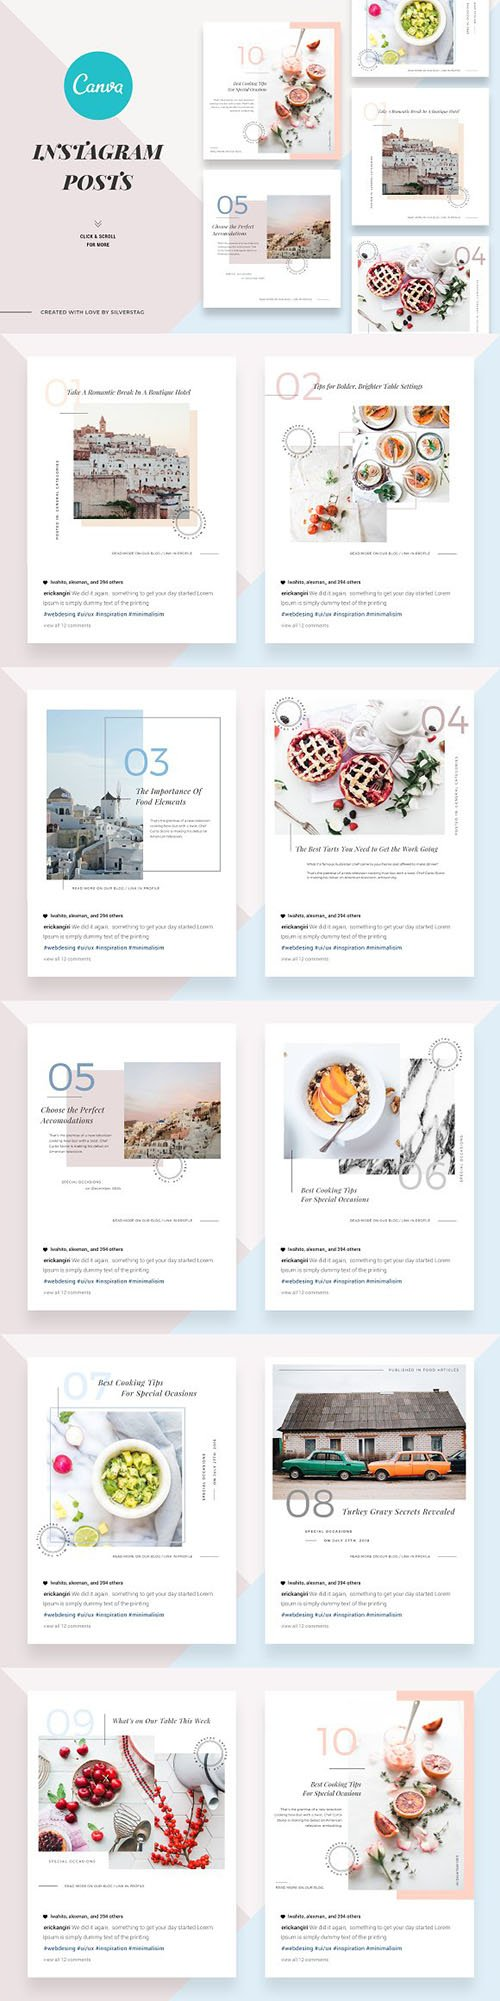 CreativeMarket - CANVA Food & Travel Instagram Posts 2676848